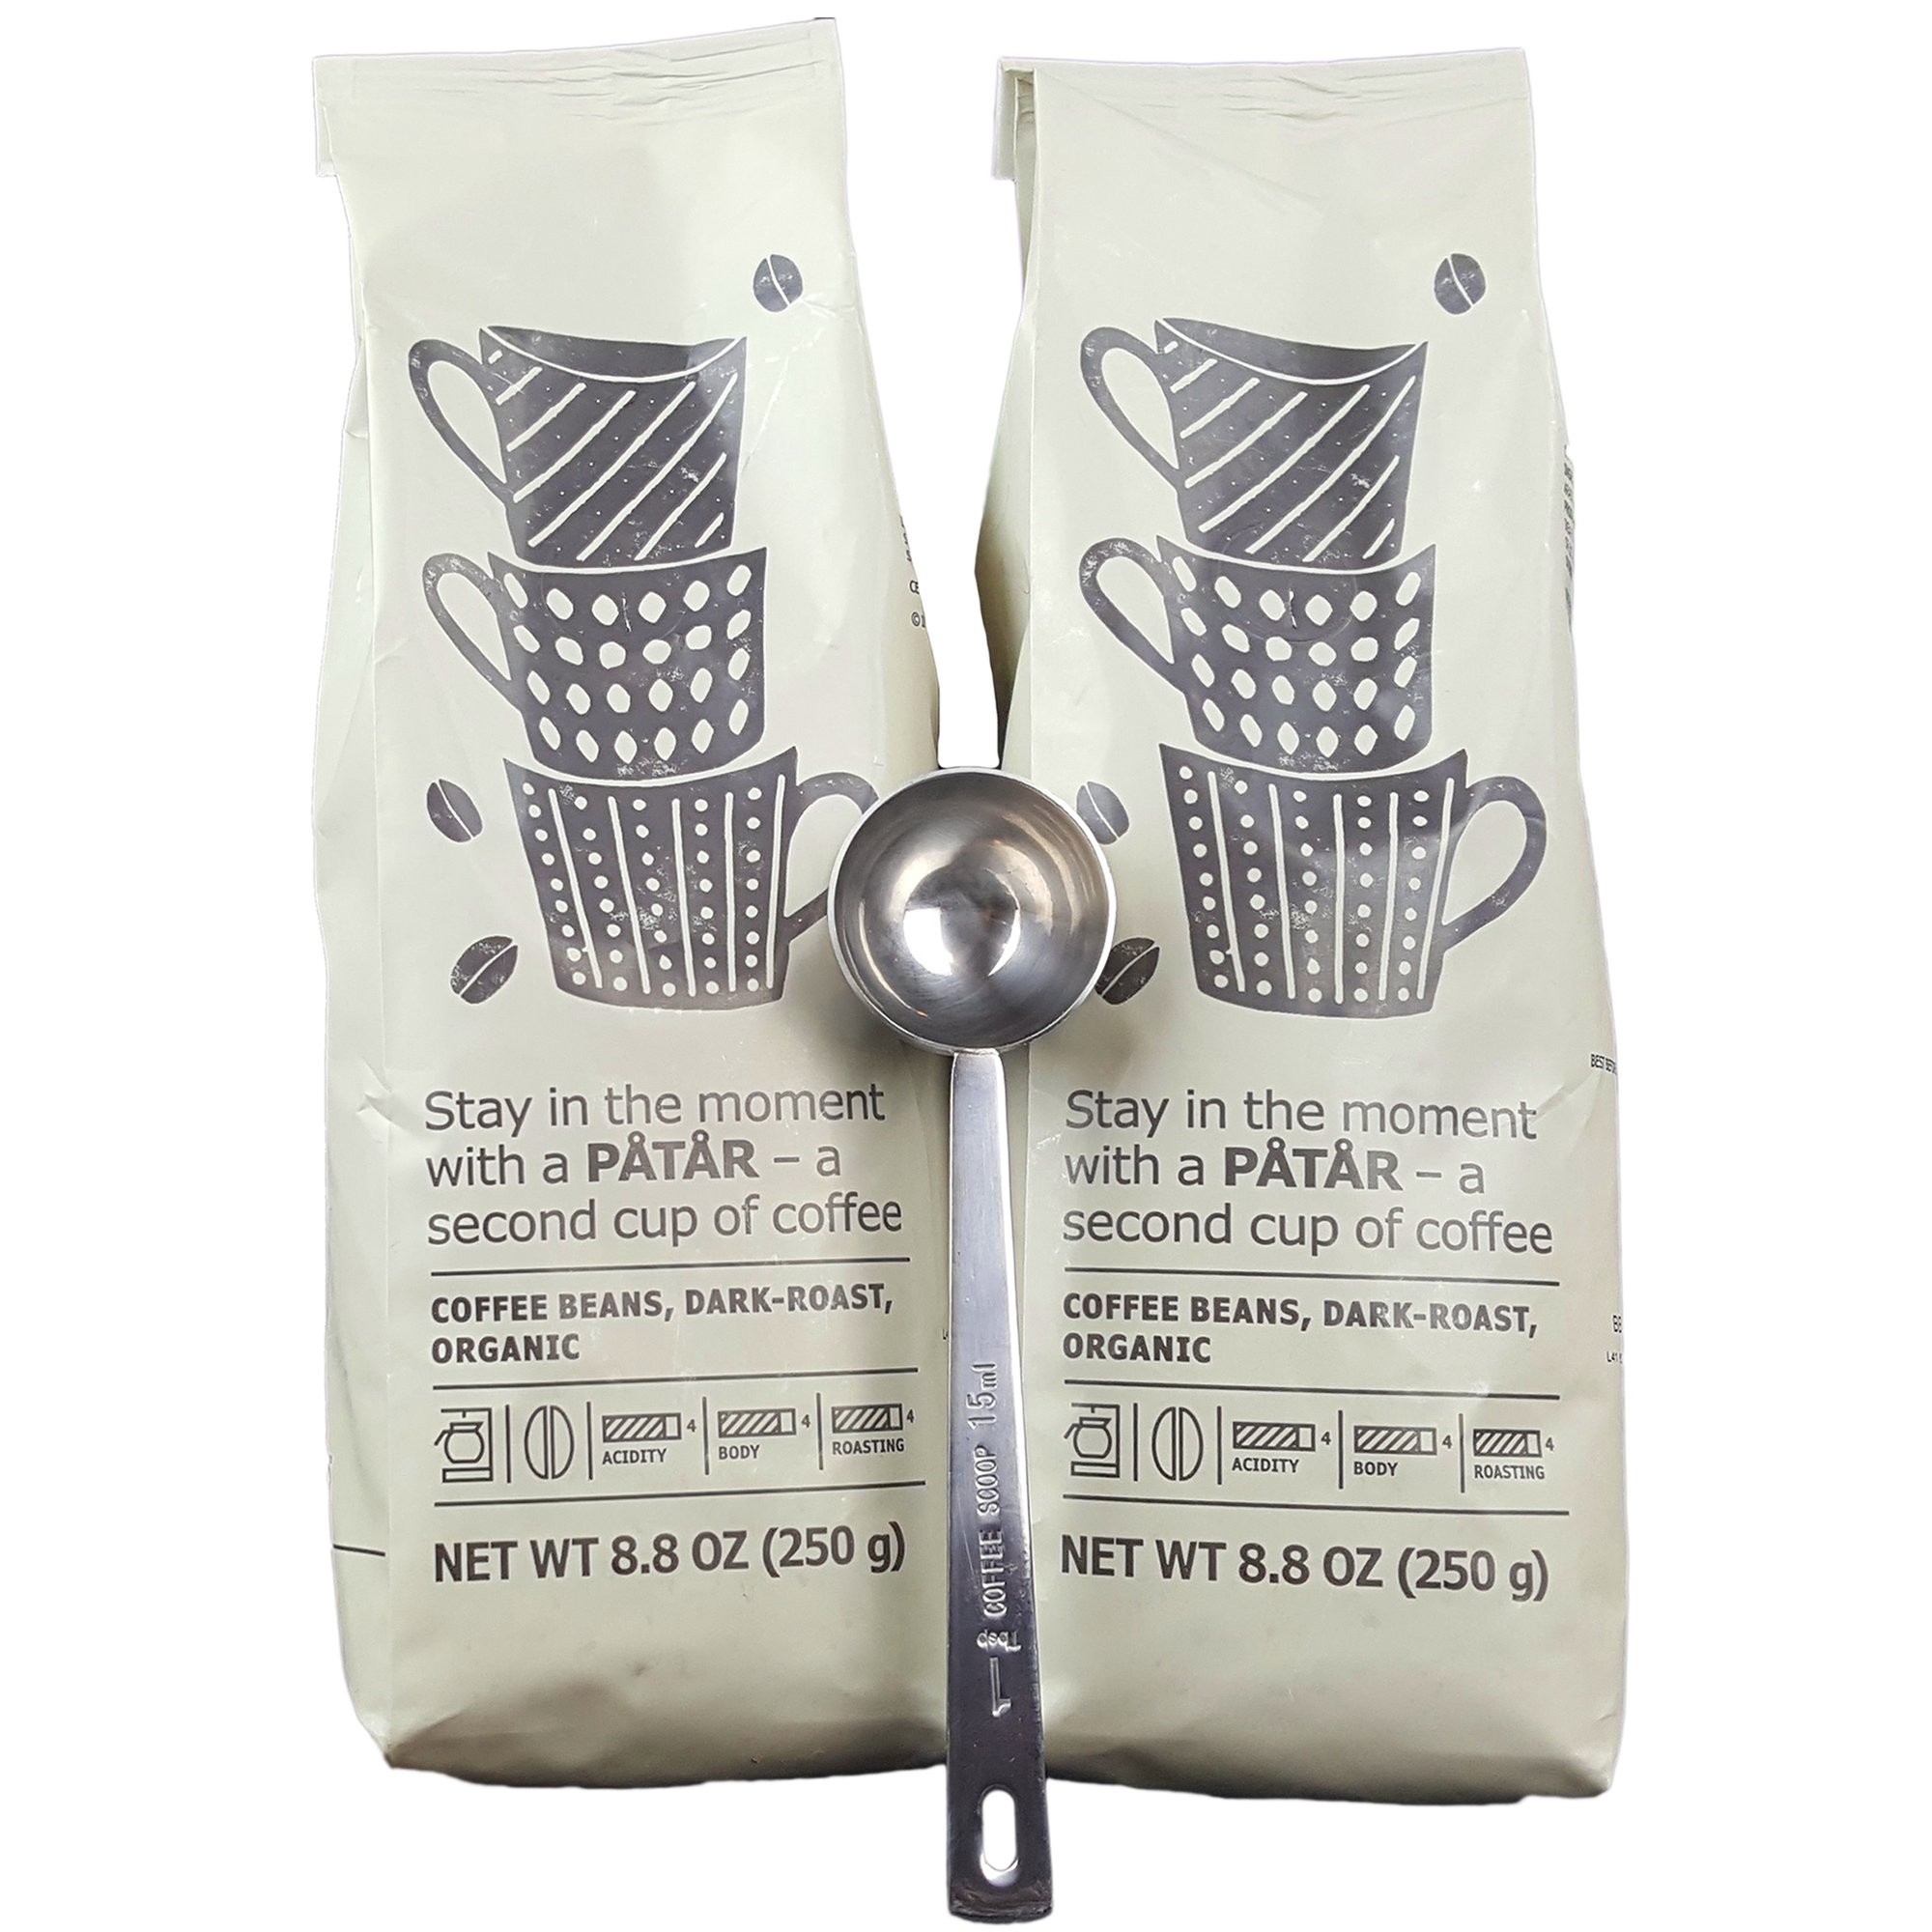 IKEA Roasted Whole Coffee Beans Bundle - Dark Roast, Organic - 8.8 Oz Each (Pack of 2 - Total 17.6 oz) With Stainless Steel Measuring Coffee Spoon